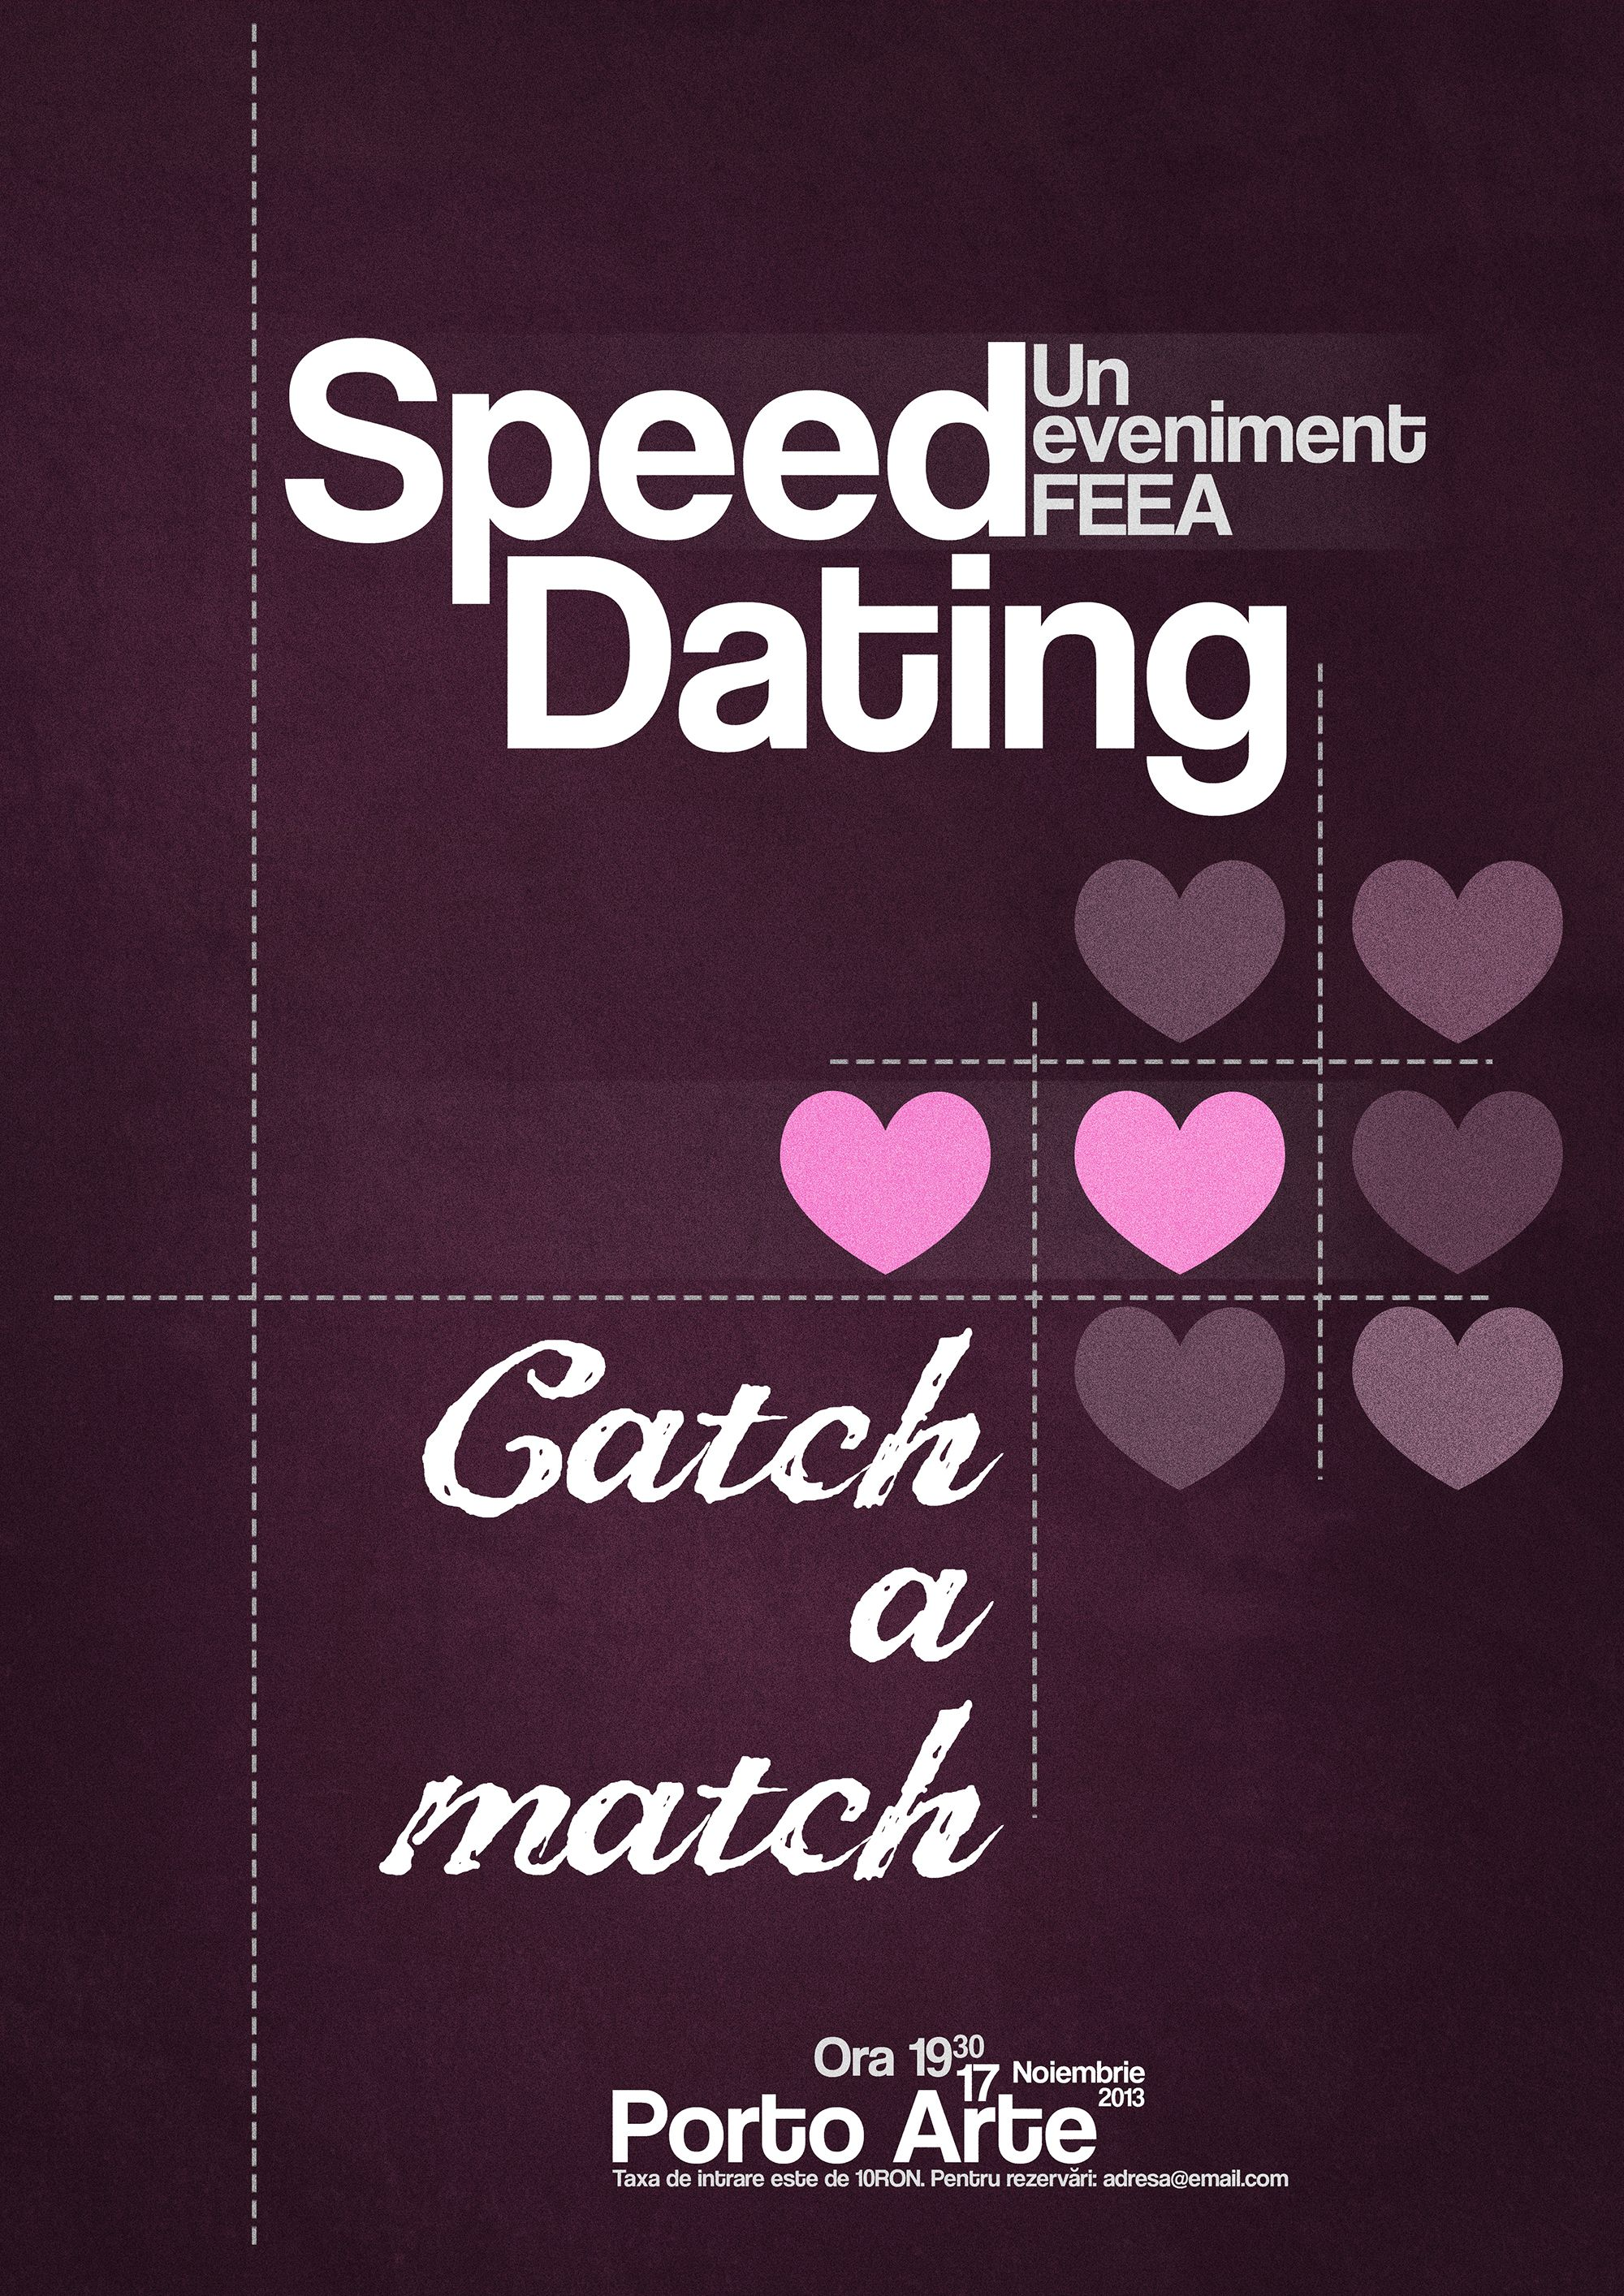 Speed dating vimeo